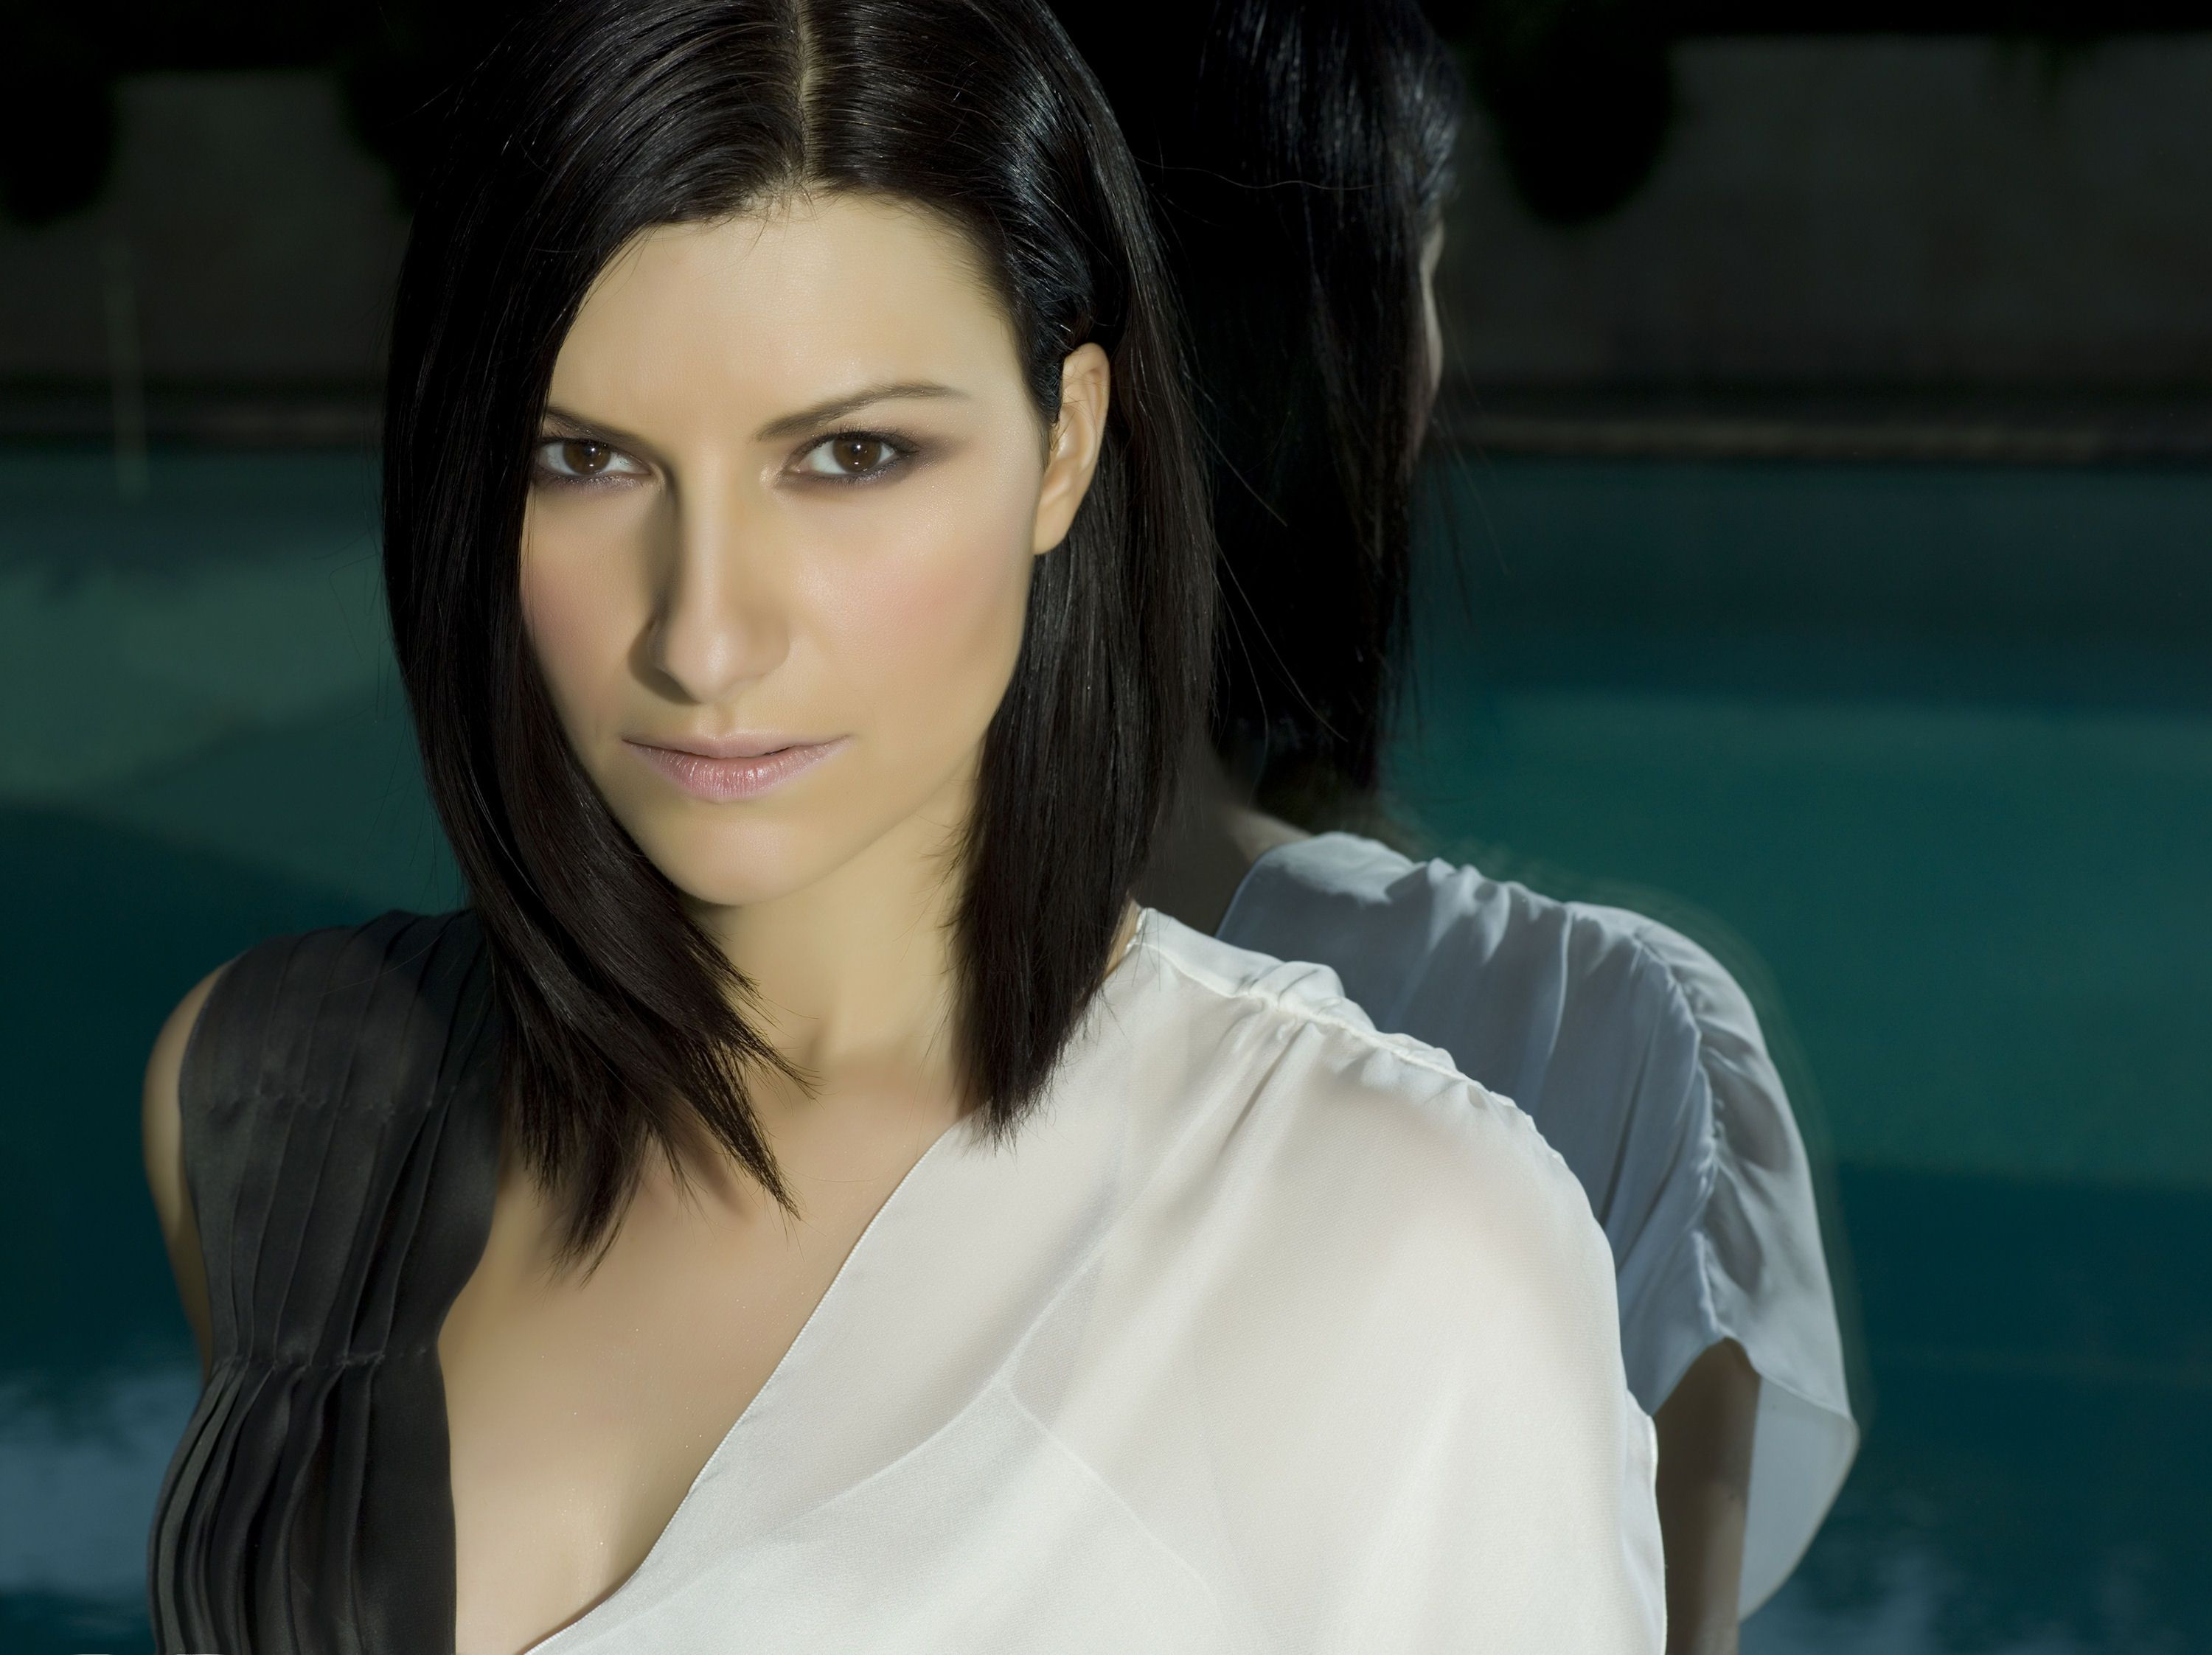 Laura Pausini images LaUra HD wallpaper and background photos